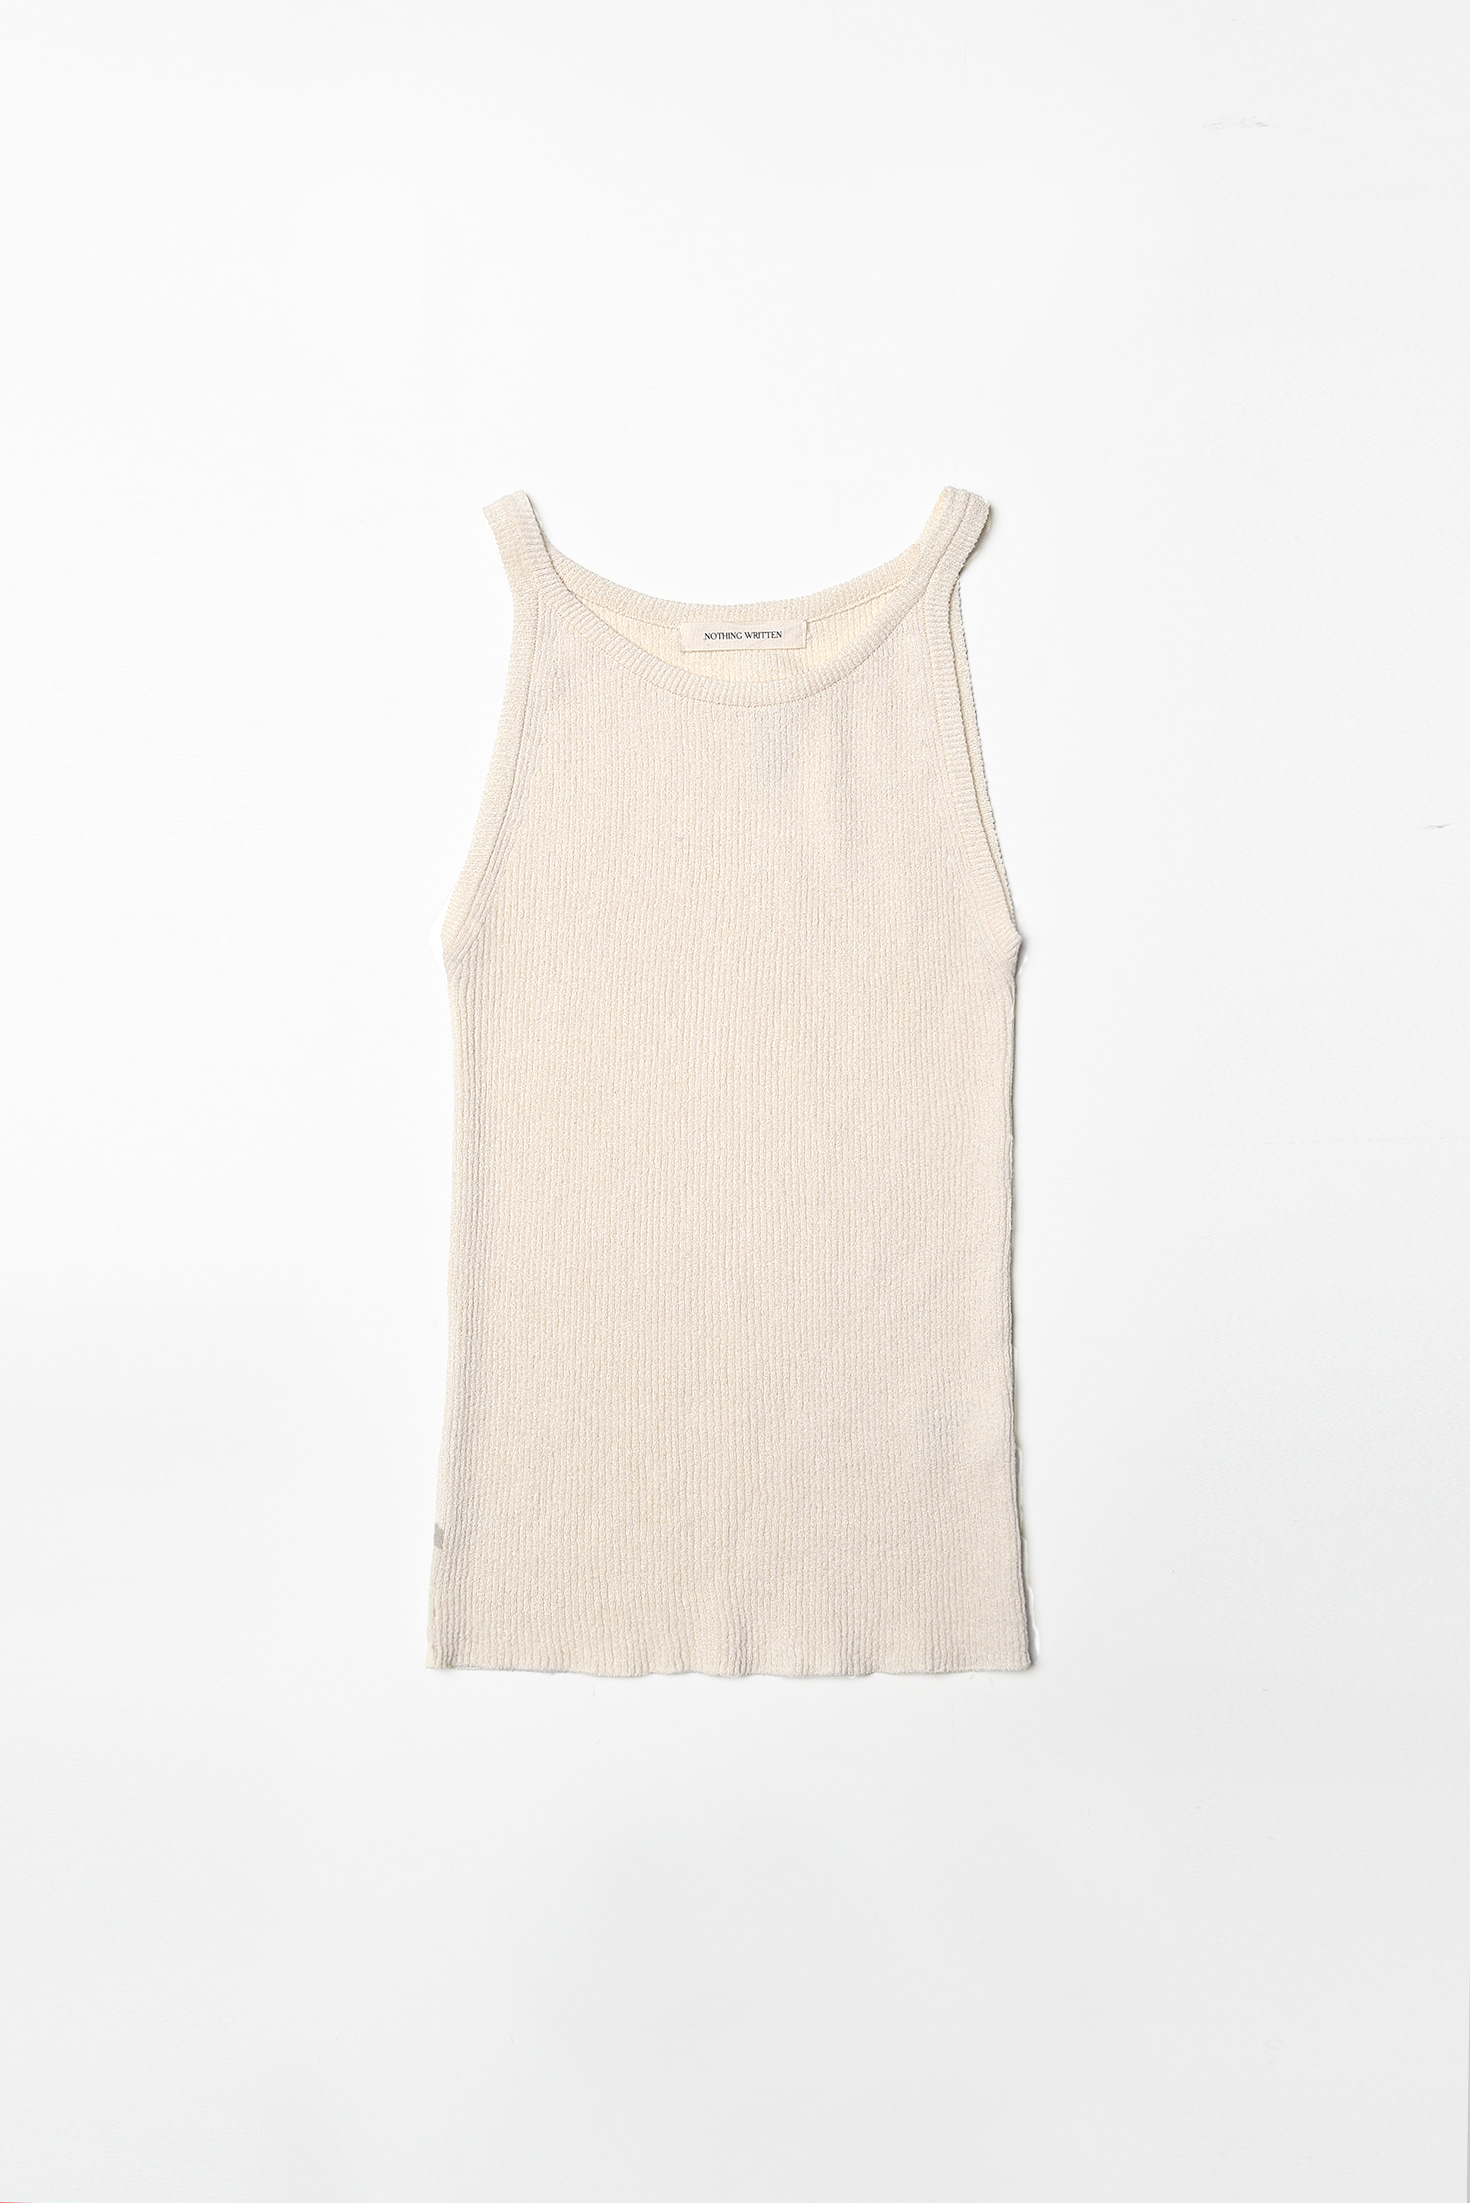 2RE-ORDER / Knit sleeveless (ivory)